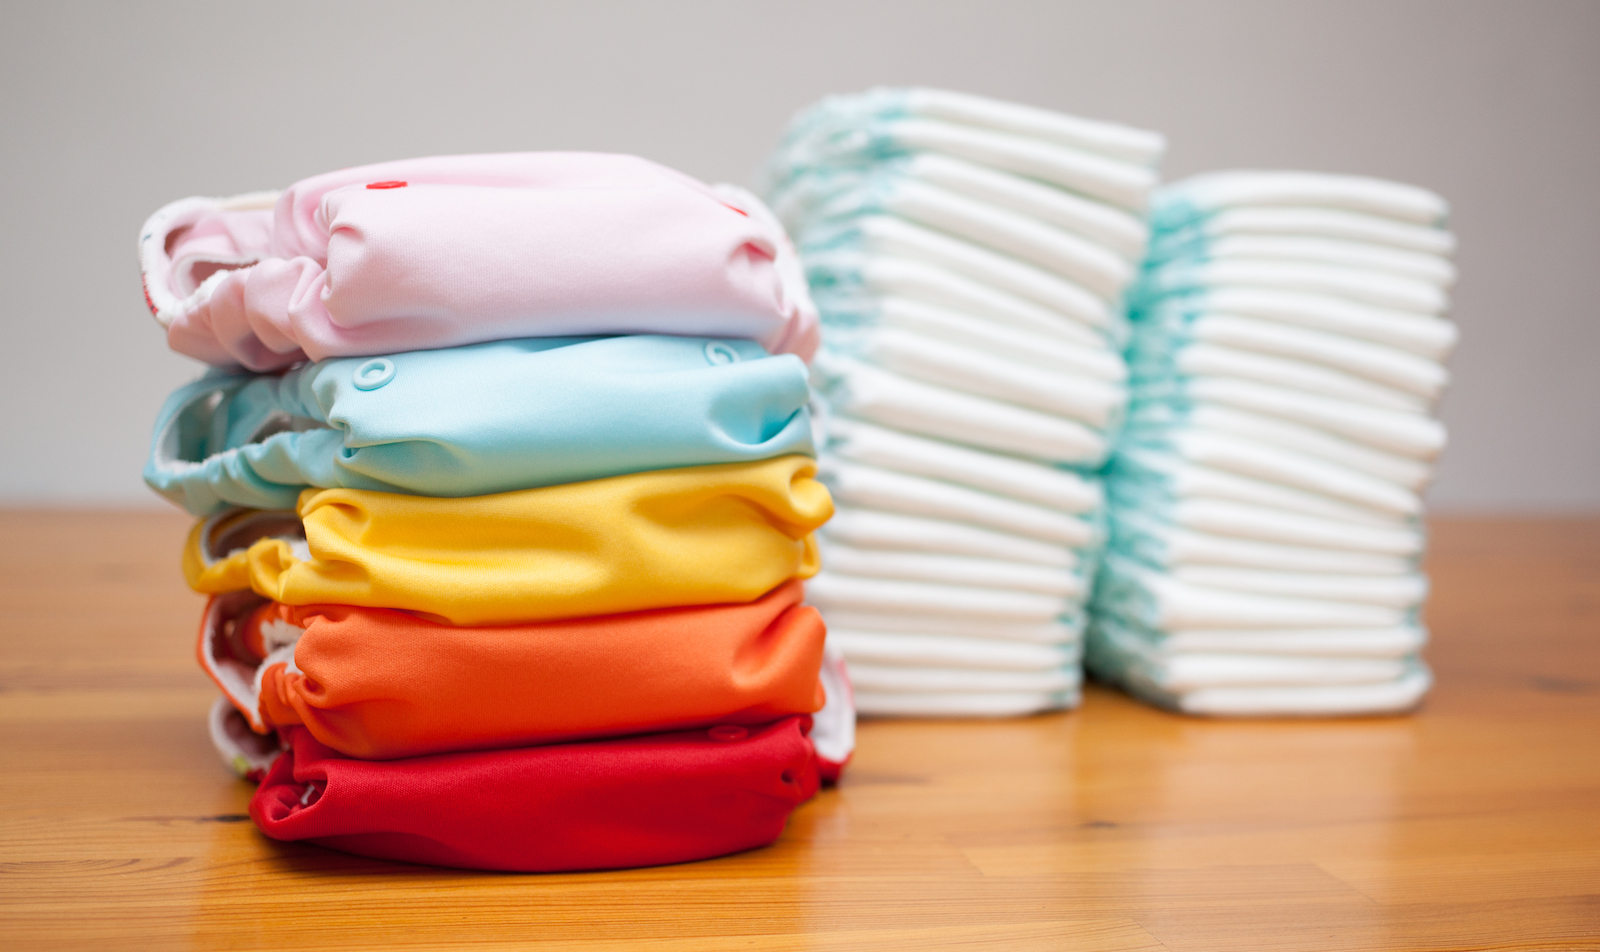 Cloth Diapers - The best baby diapers, how to clean reusable diapers and where to buy